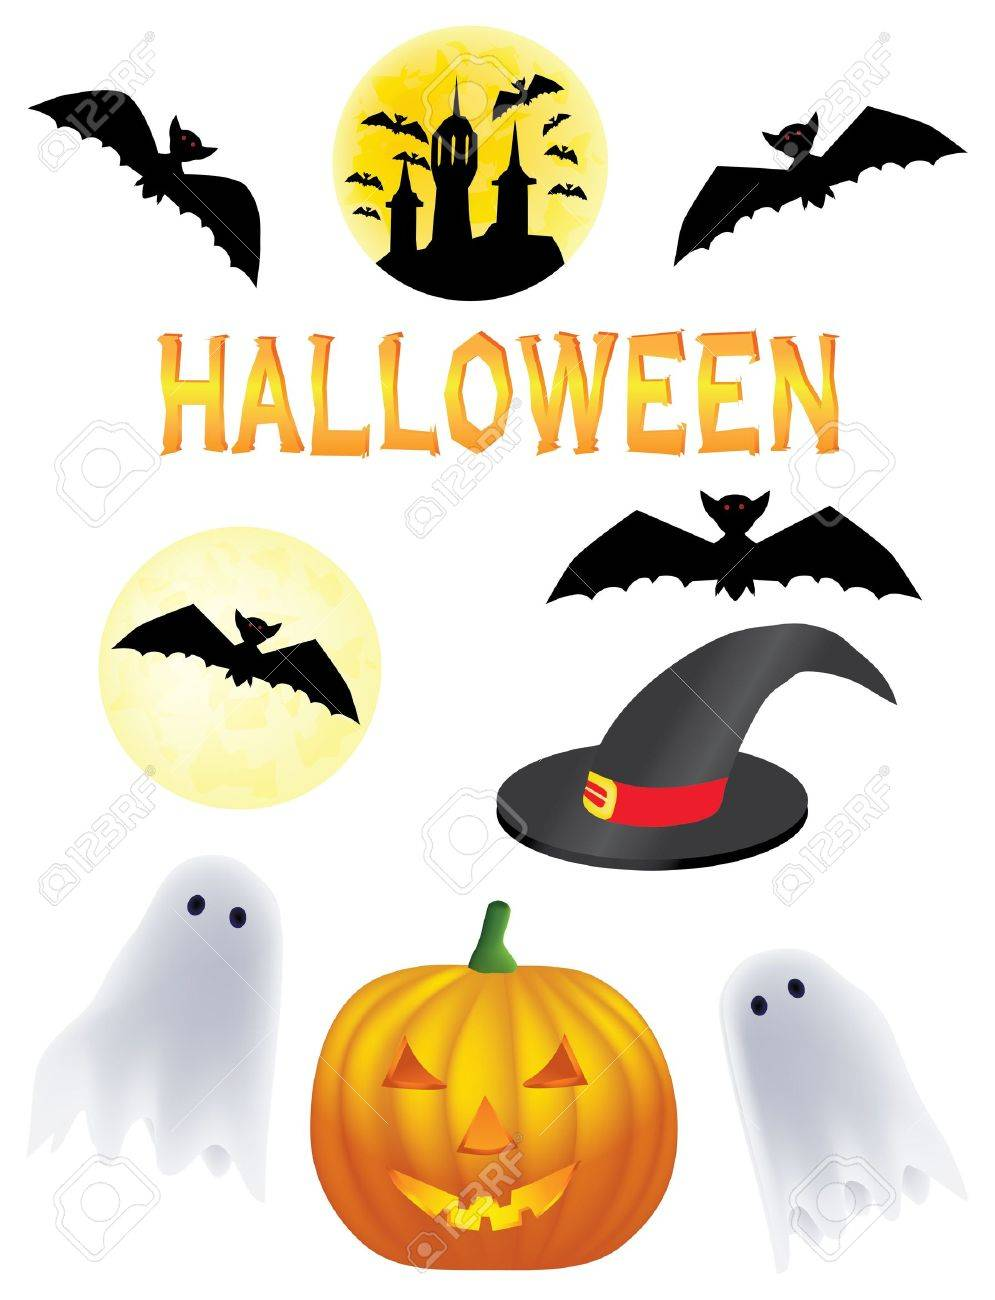 halloween vector clipart royalty free cliparts vectors and stock rh 123rf com free halloween vector files free halloween vector clipart